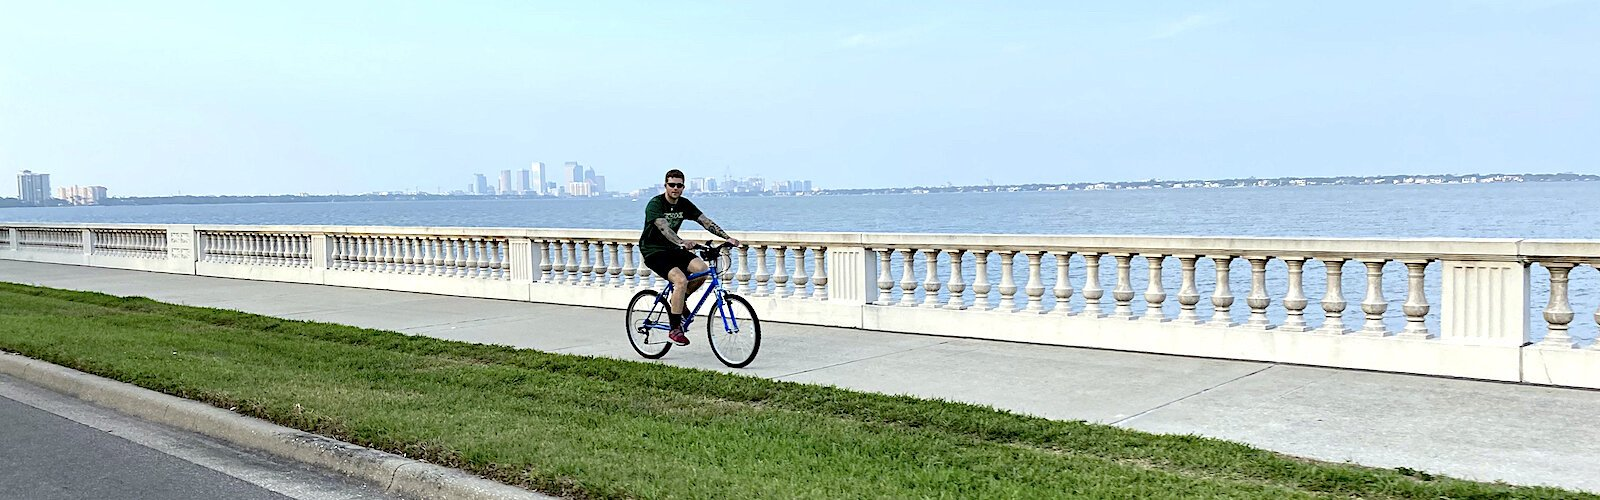 Daily visits along the waterfront in Tampa Bay help keep the coronavirus experience tolerable.